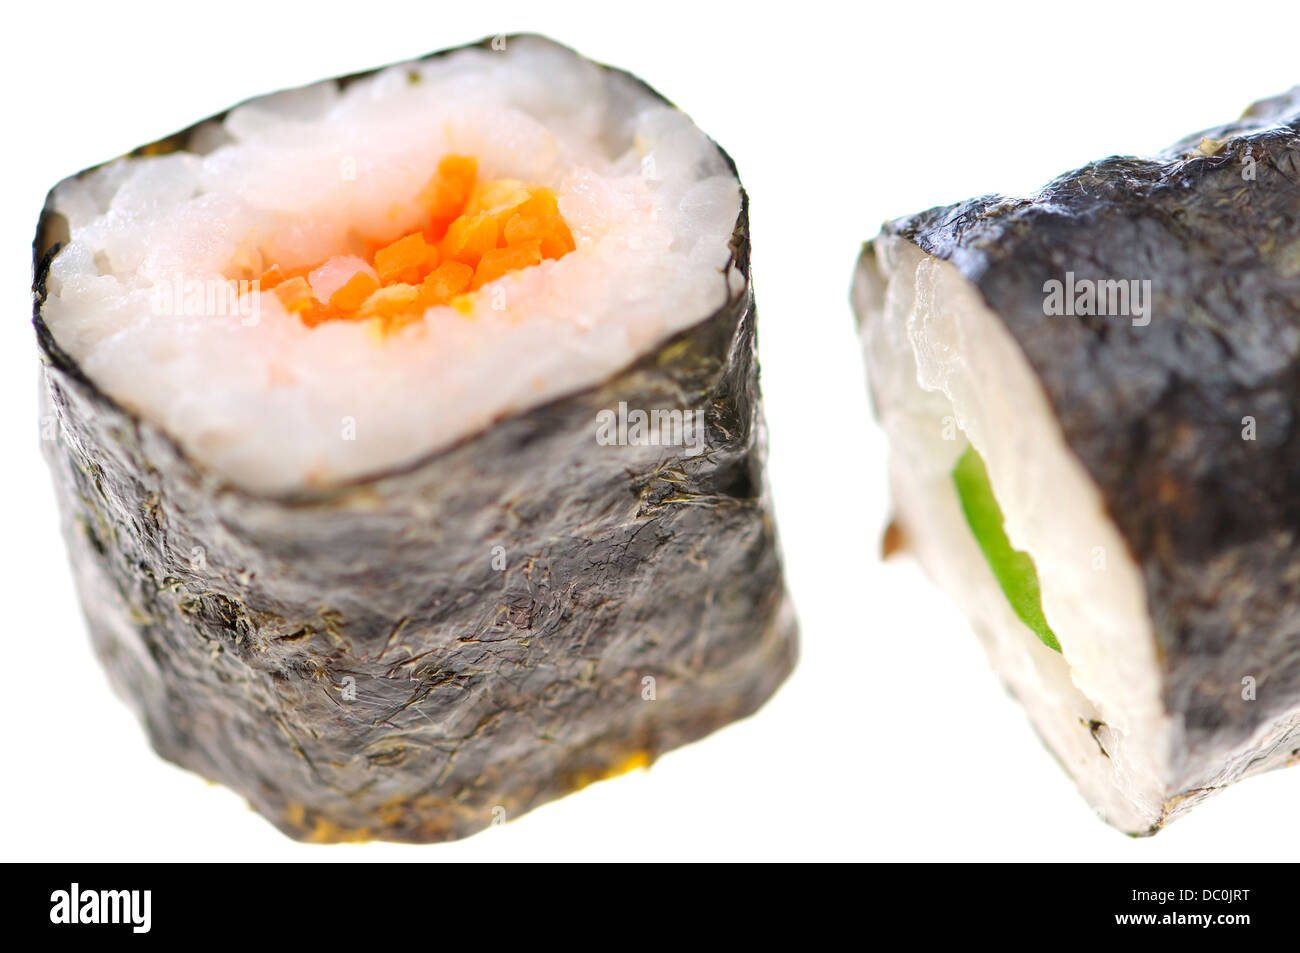 Sushi - maki (rice roll wrapped in seaweed) - Stock Image